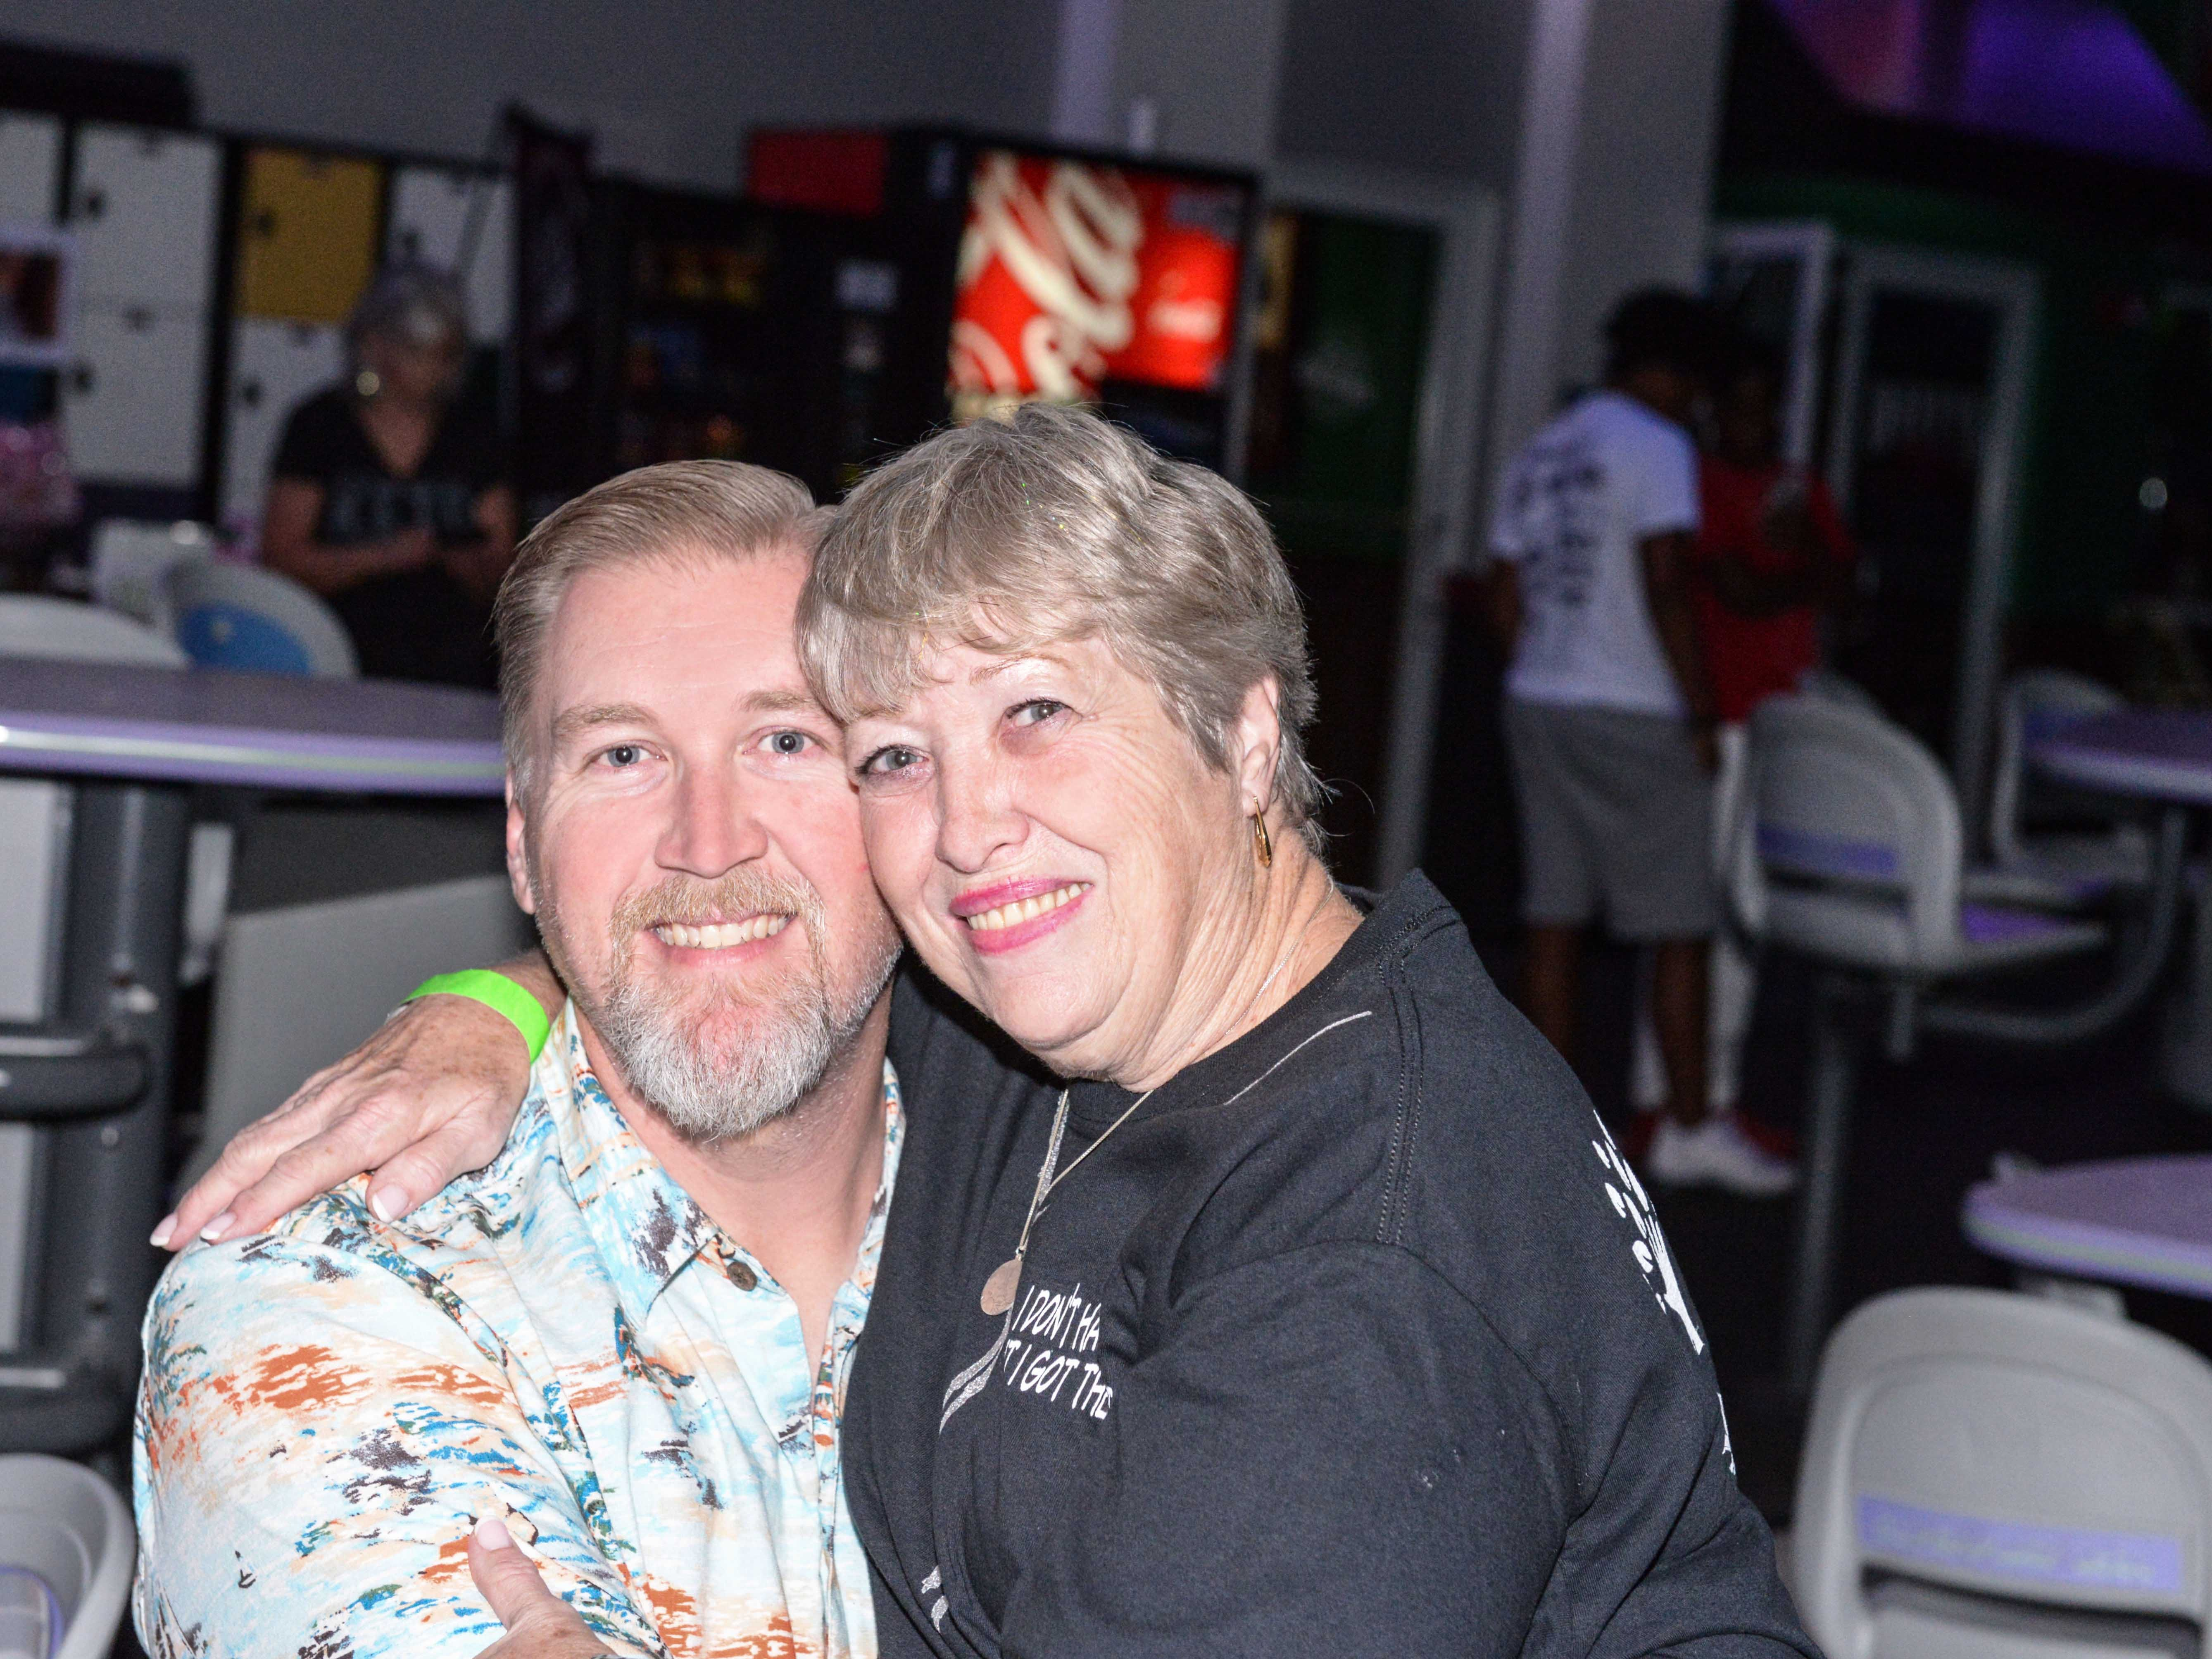 Marc and Tena Sigmon at the Cosmic Family Fun event  to support HANDSof St. Lucie County.